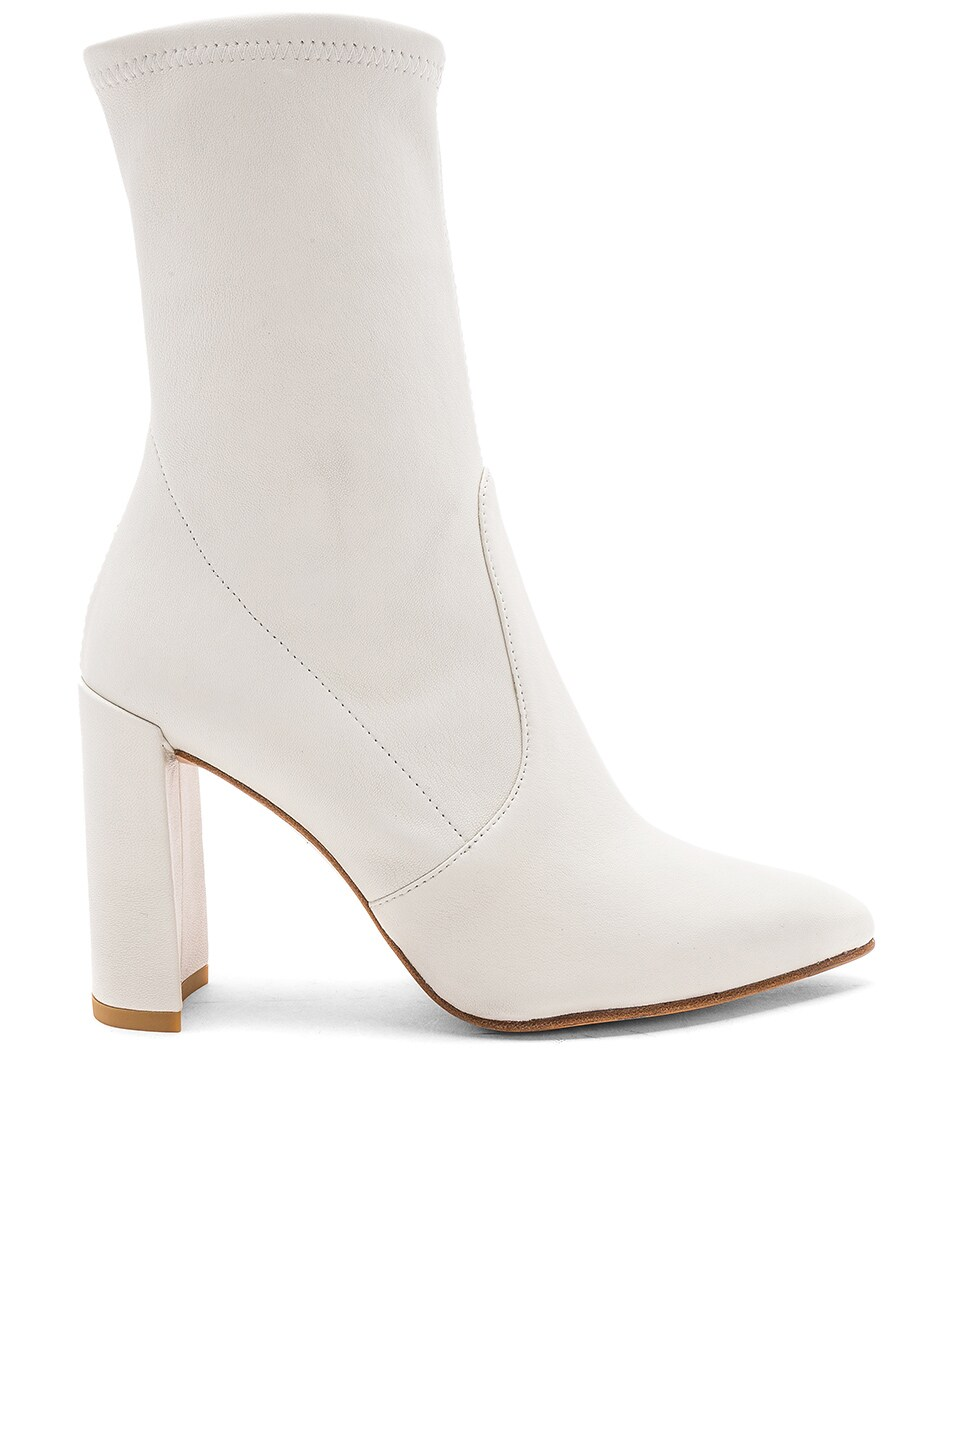 Stuart Weitzman Clinger Bootie in Snow